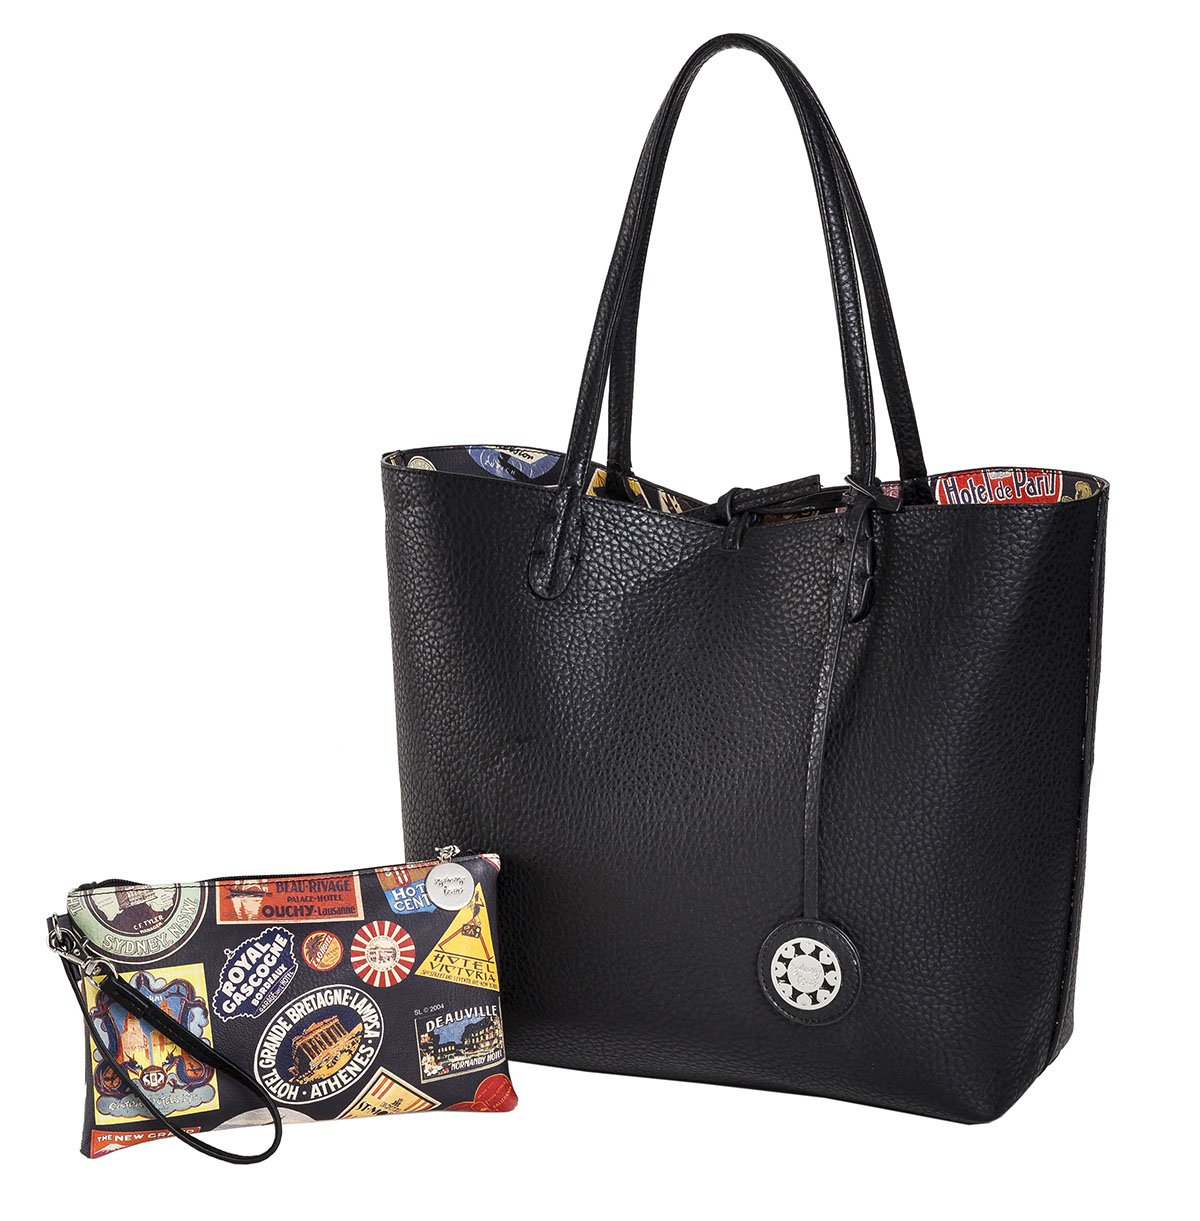 Sydney Love Reversible Tote & Wristlet Set, World Travel Print/Black